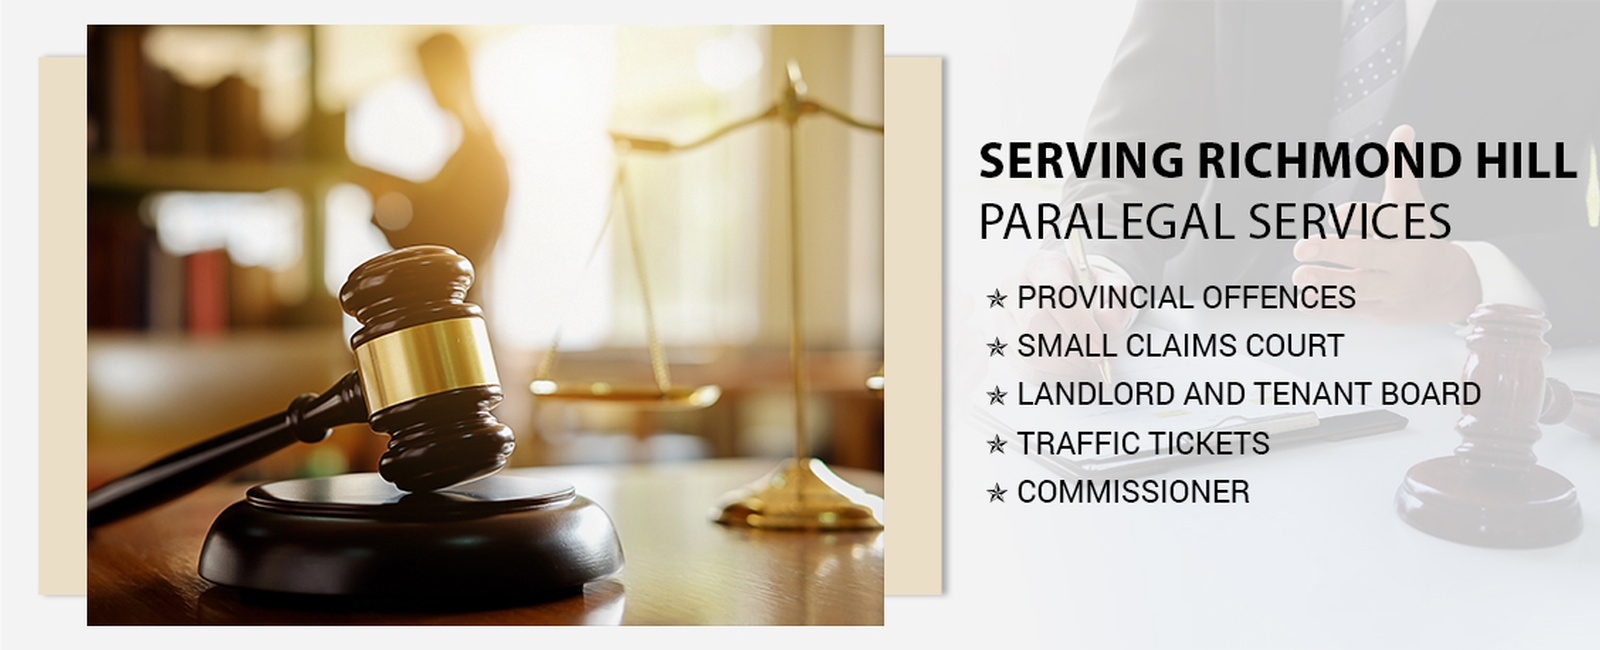 Paralegal services in Richmond Hill